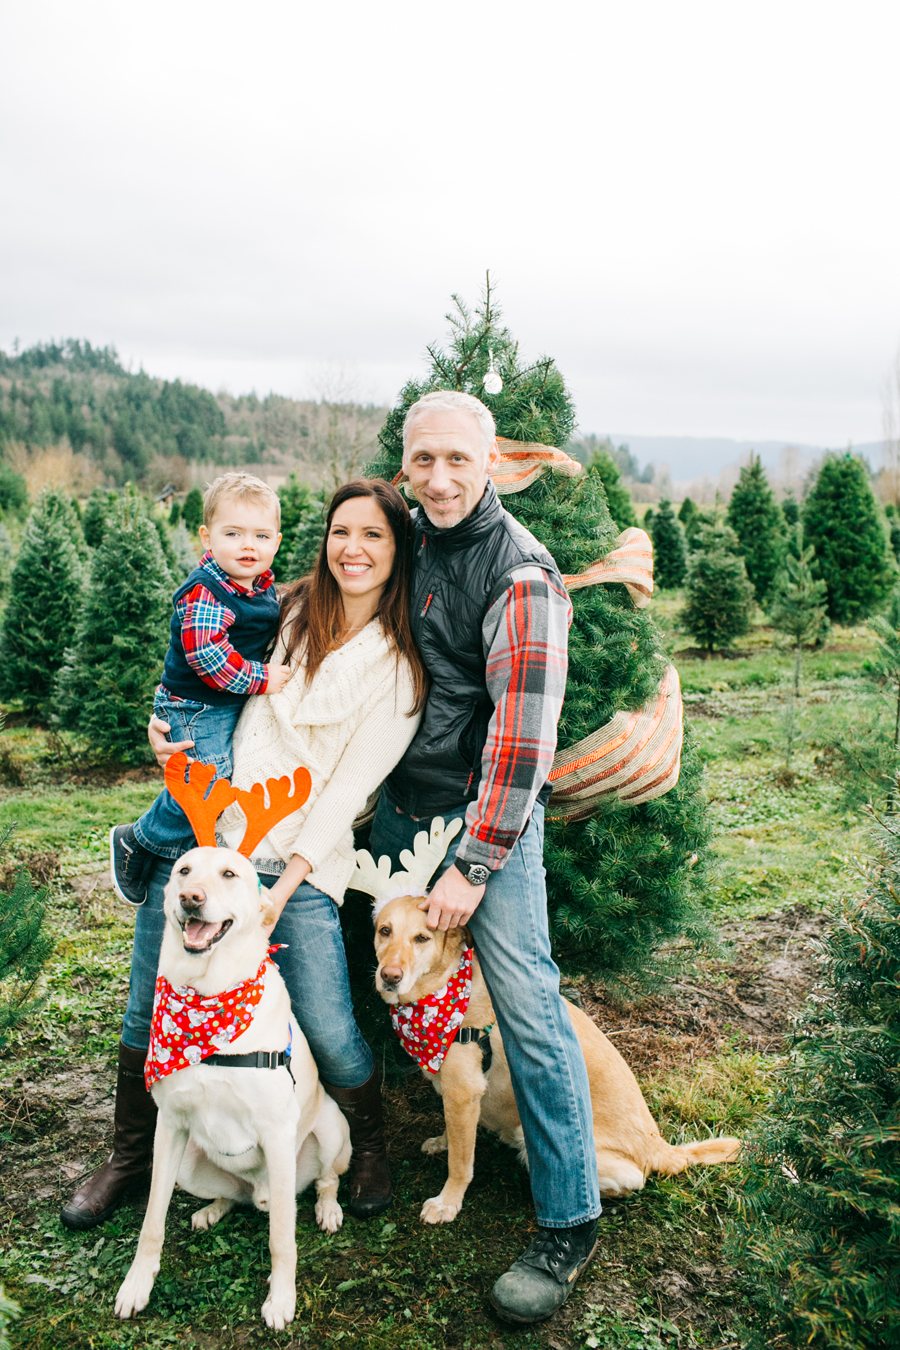 018-fullner-family-christmas-tree-farm-everson-washington-bellingham-family-photographer-katheryn-moran-photography.jpg